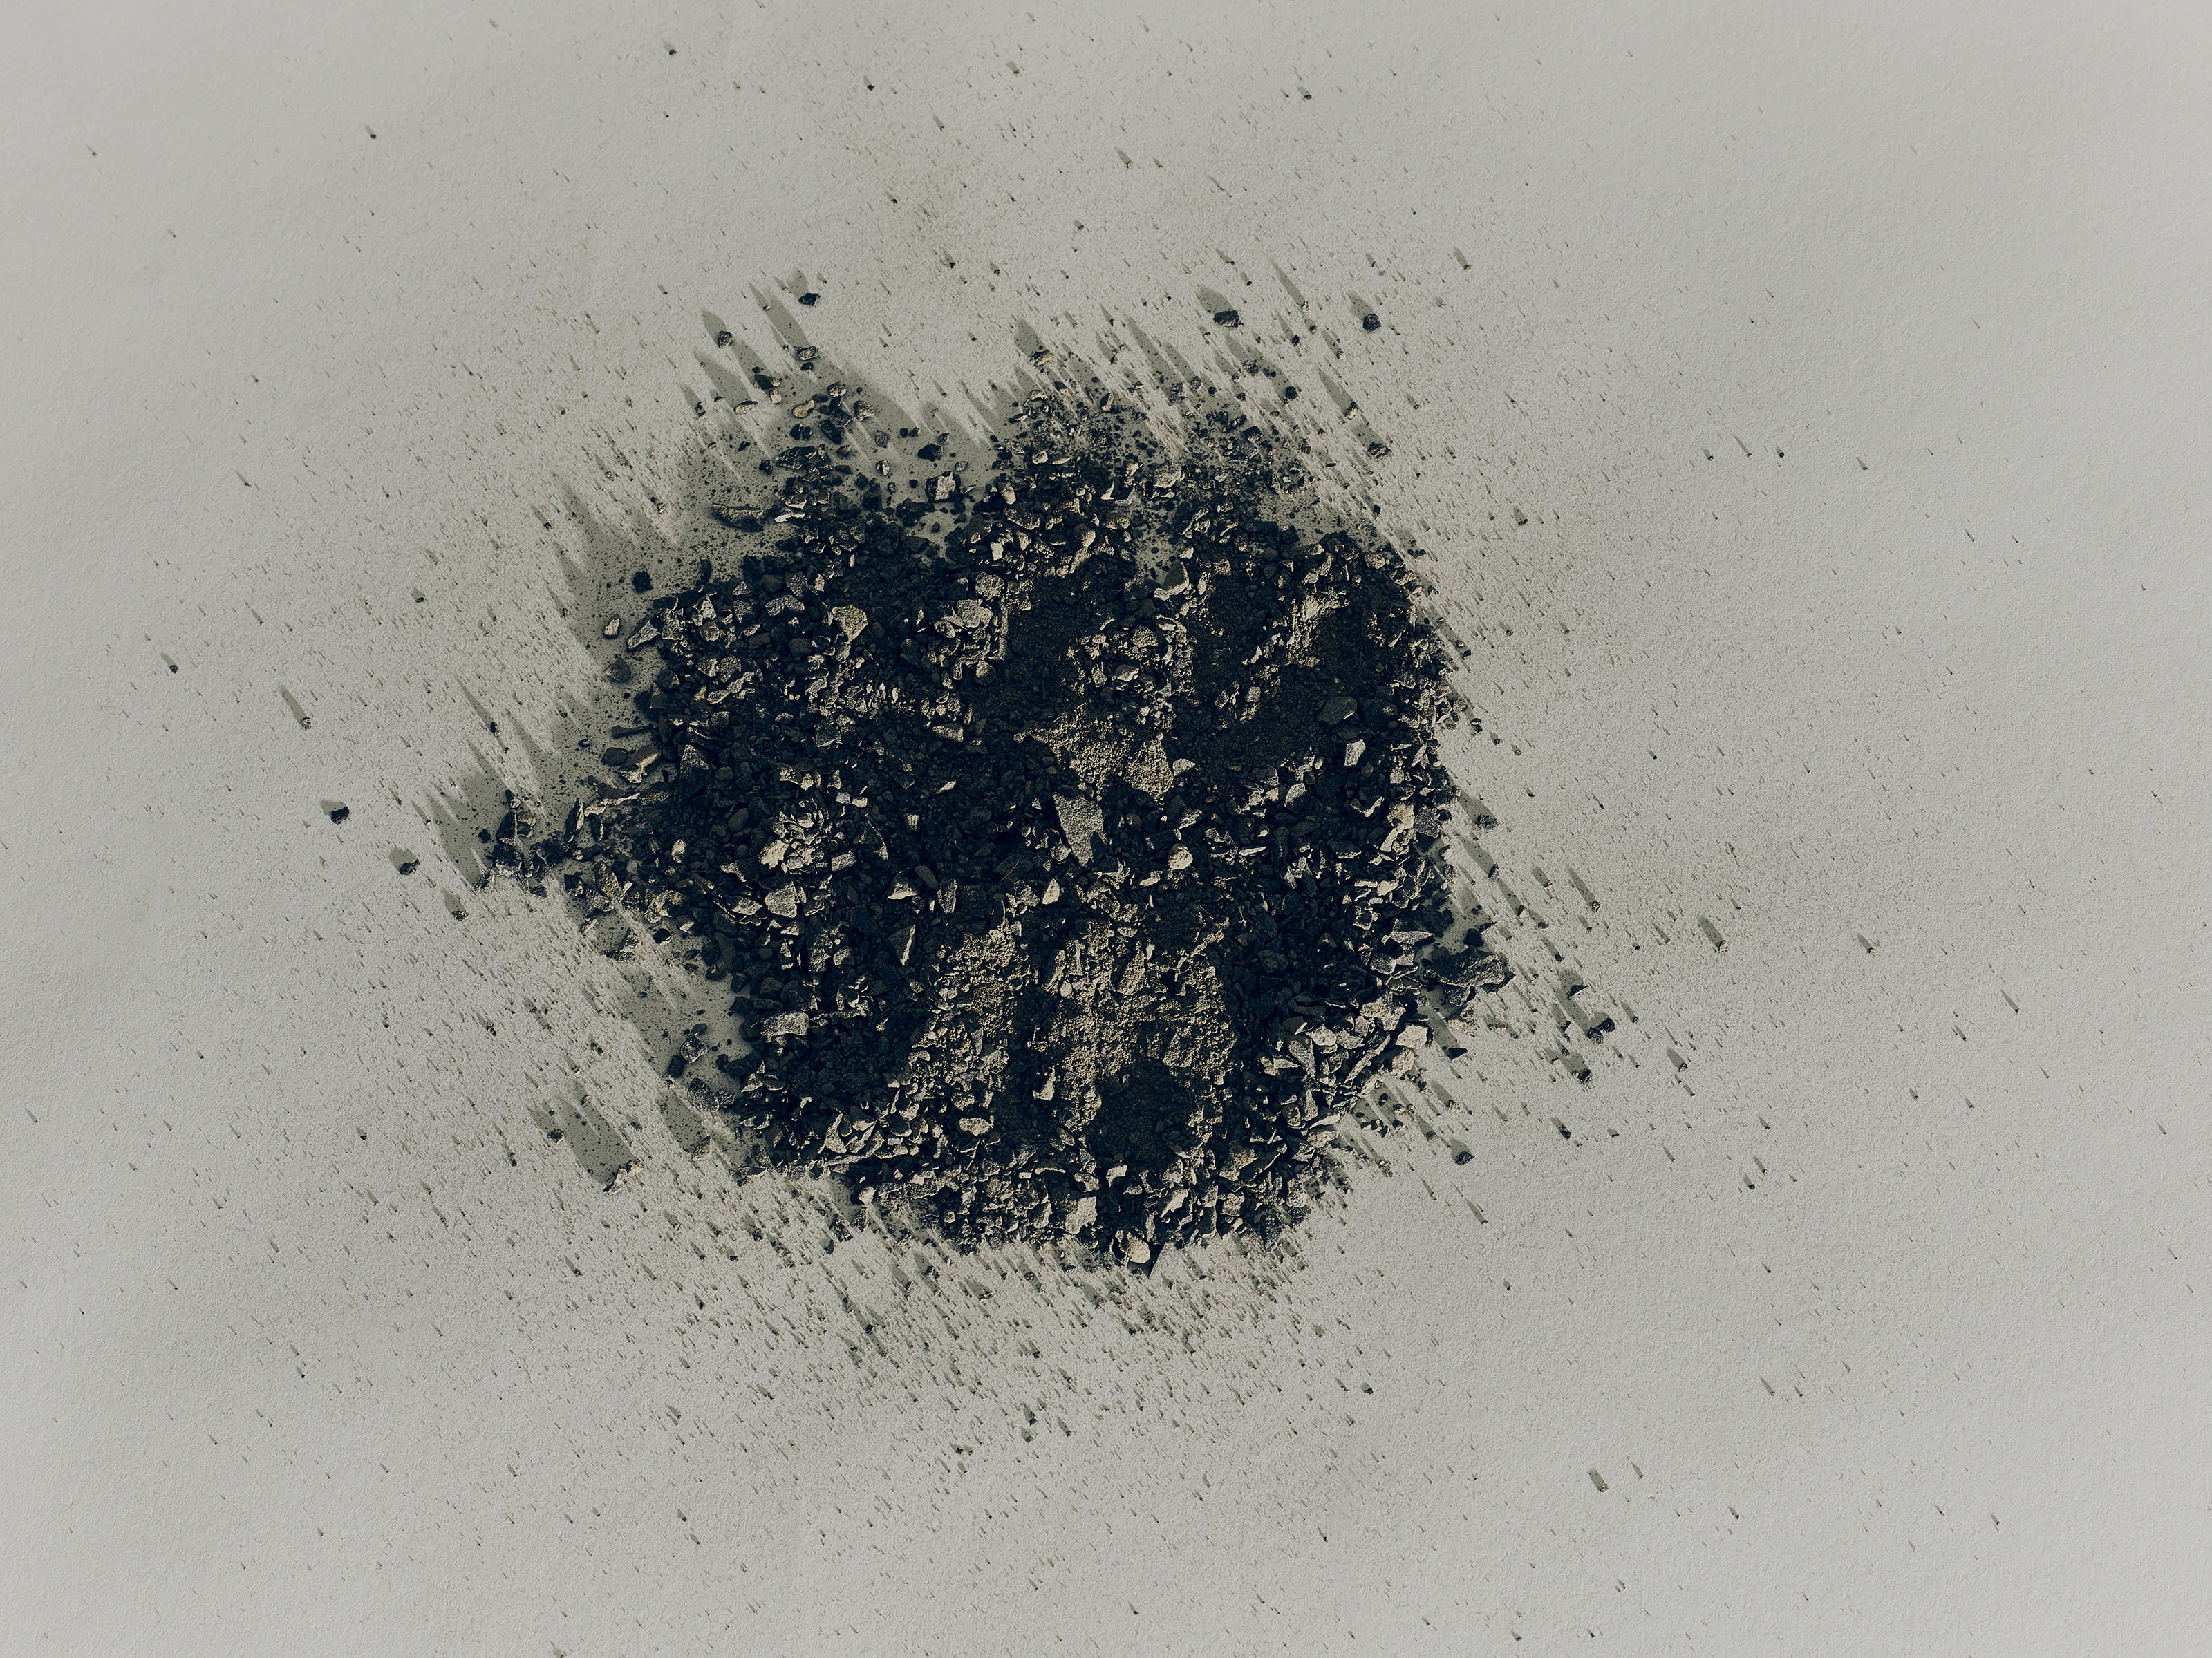 Mixed particles of volcanic ash.